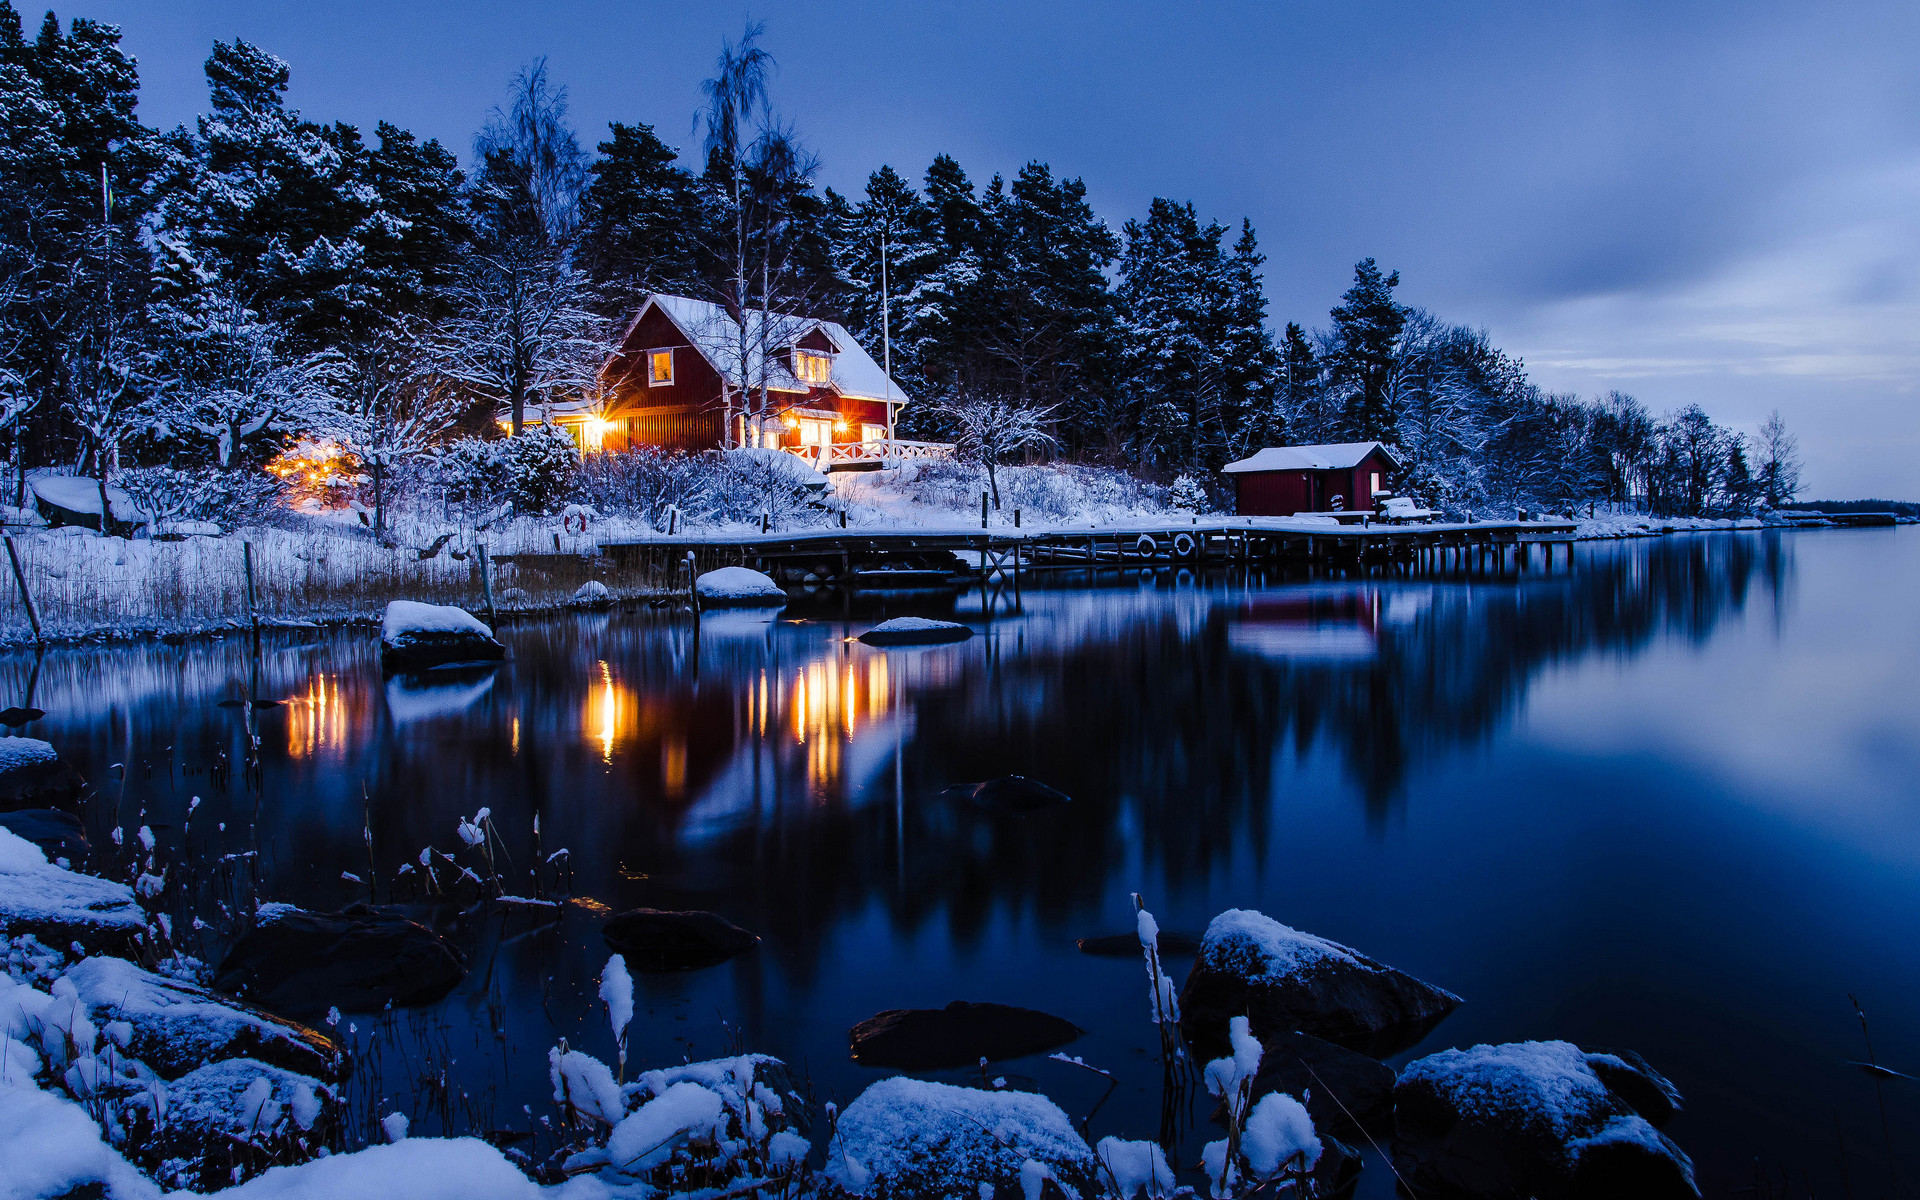 Snow Wallpapers 1920x1080 Full Hd: Beautiful Winter Wallpapers (60+ Images